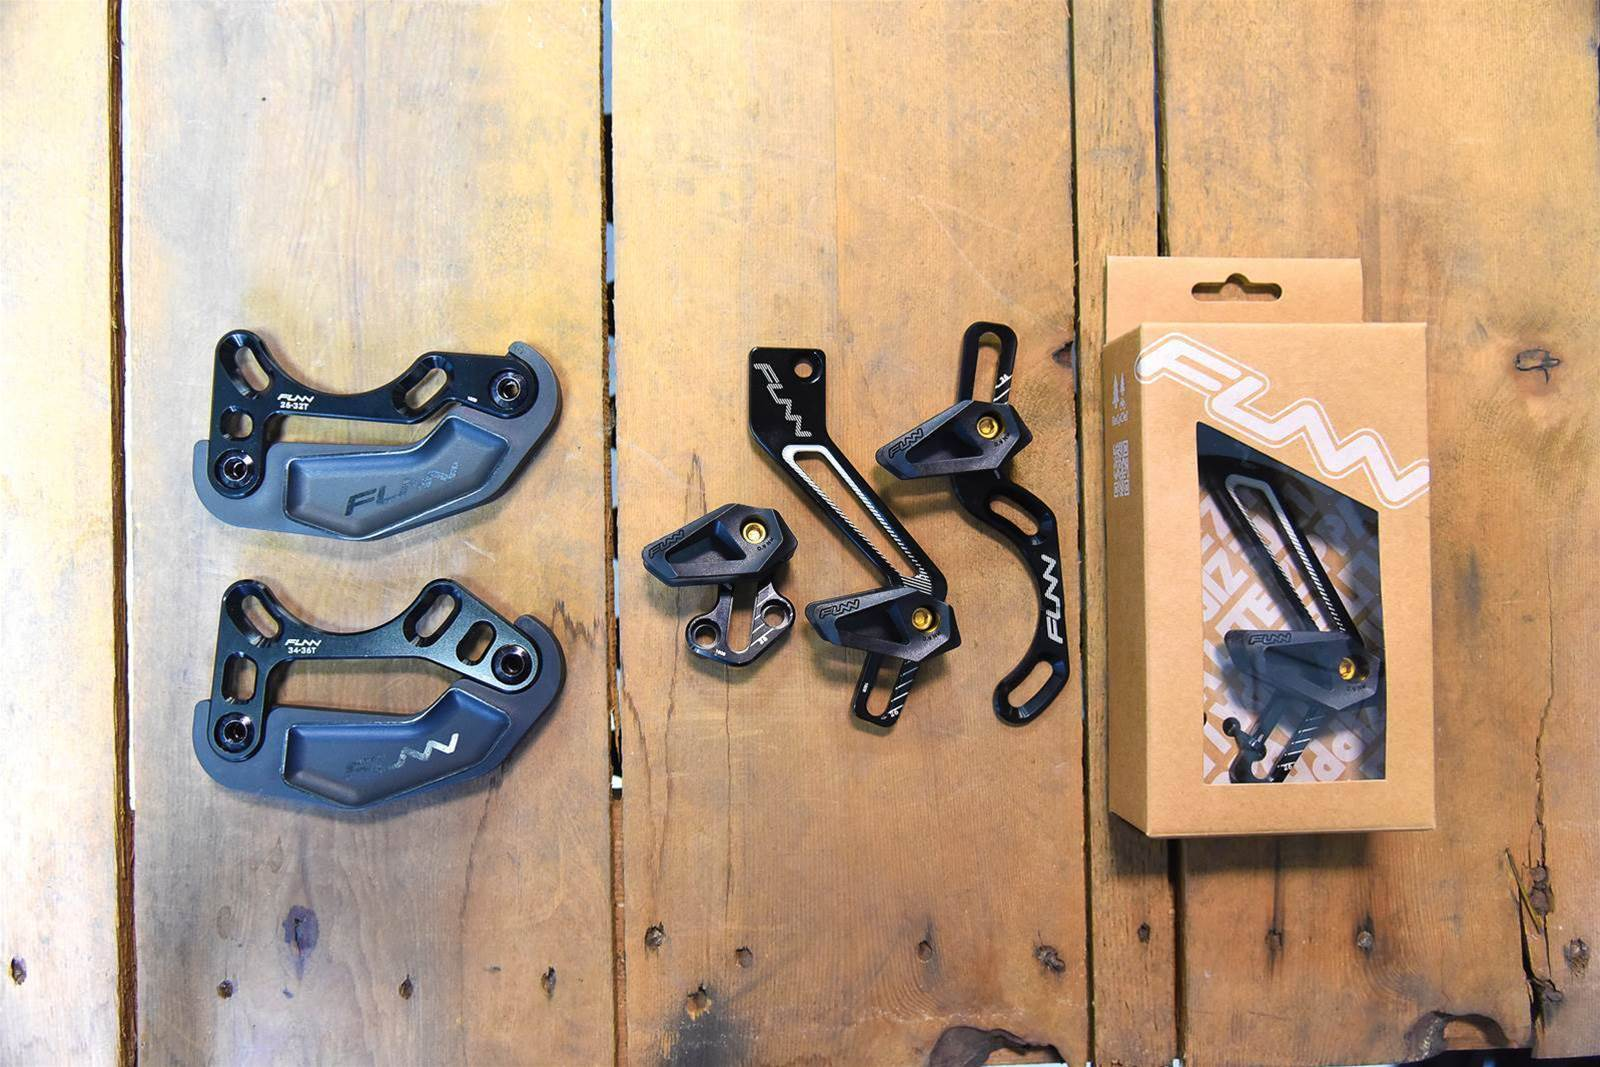 TESTED: Funn Zippa lite chain guides